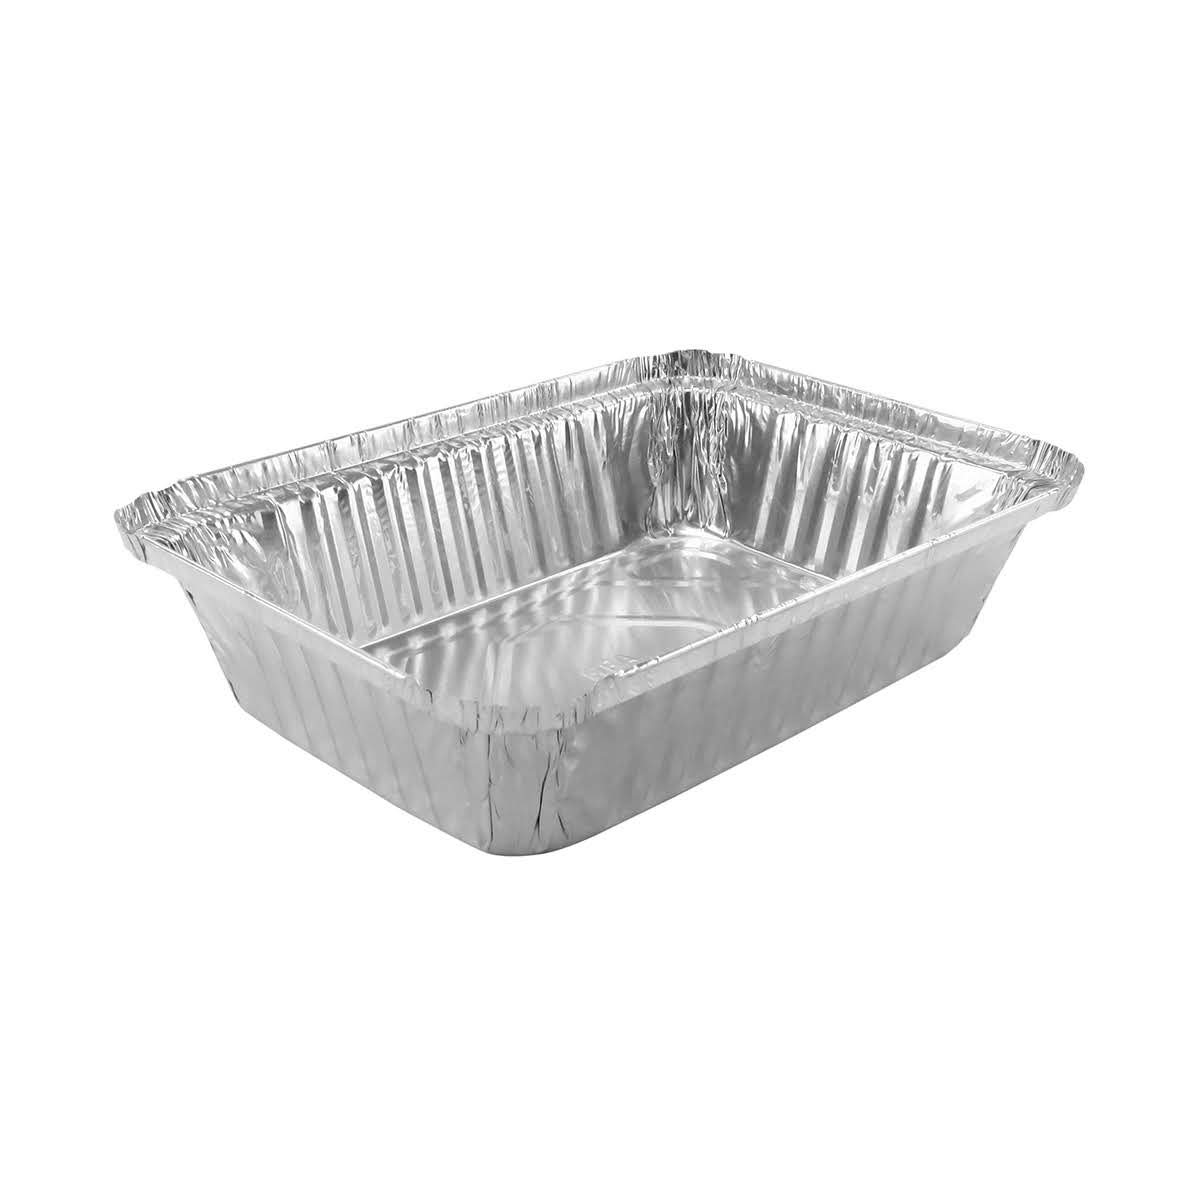 Disposable Aluminum 2 1/4 Lb. Food Storage Pan with Board Lid #250L (250)